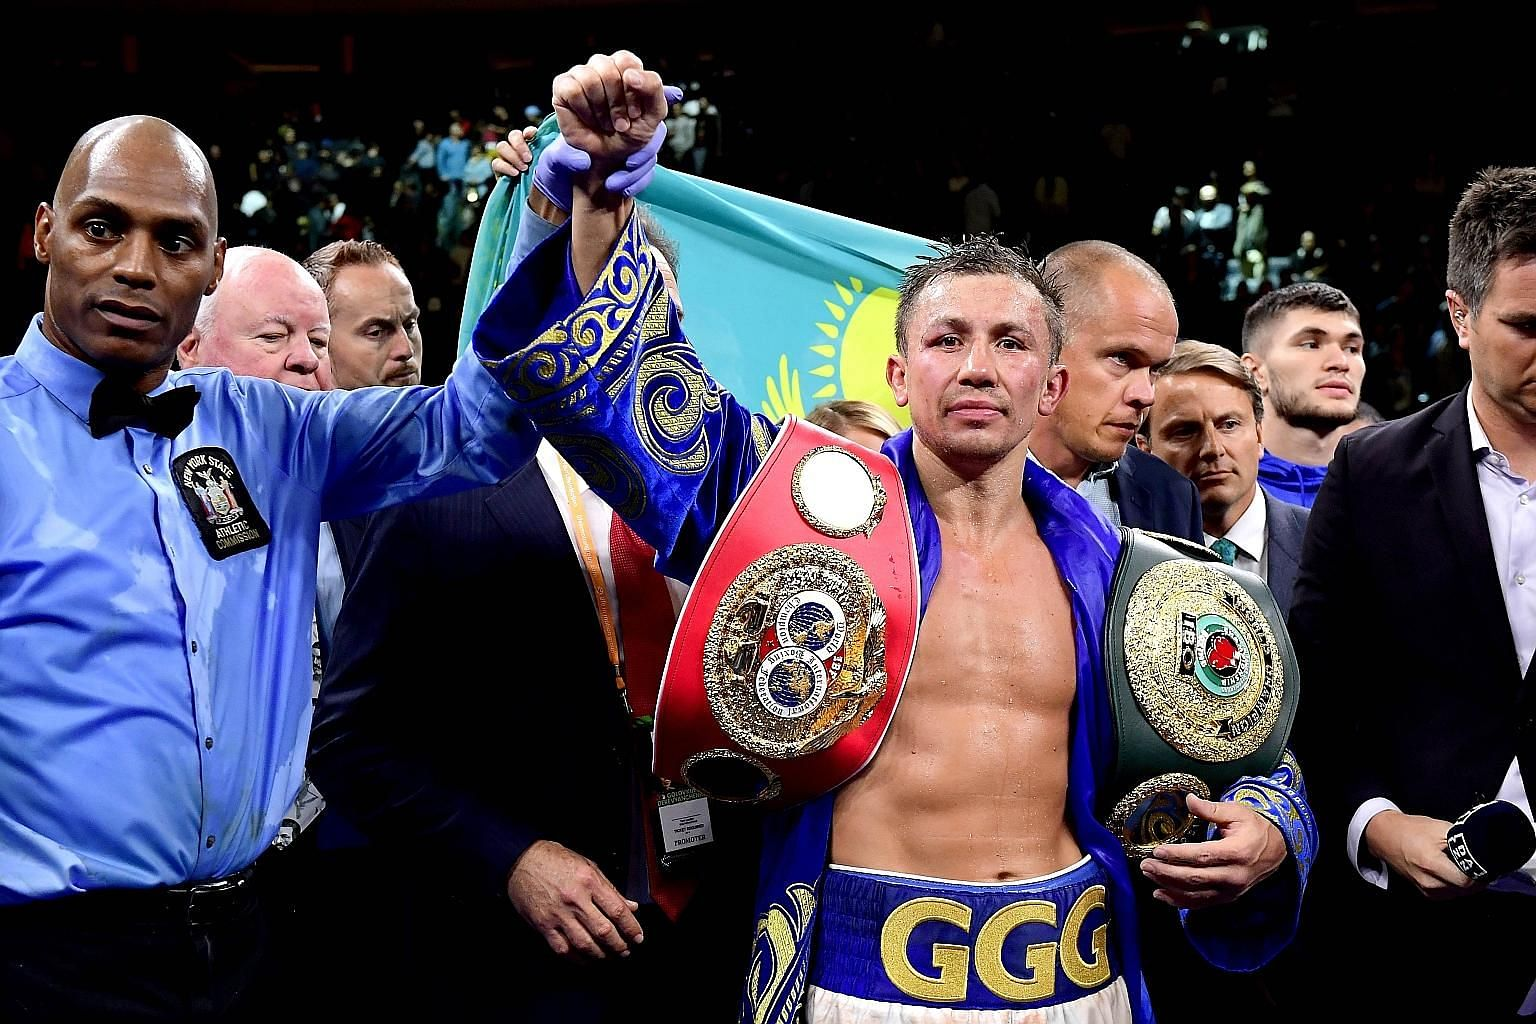 Gennady Golovkin beat Sergiy Derevyanchenko by unanimous decision to win the IBF middleweight title at Madison Square Garden on Saturday.